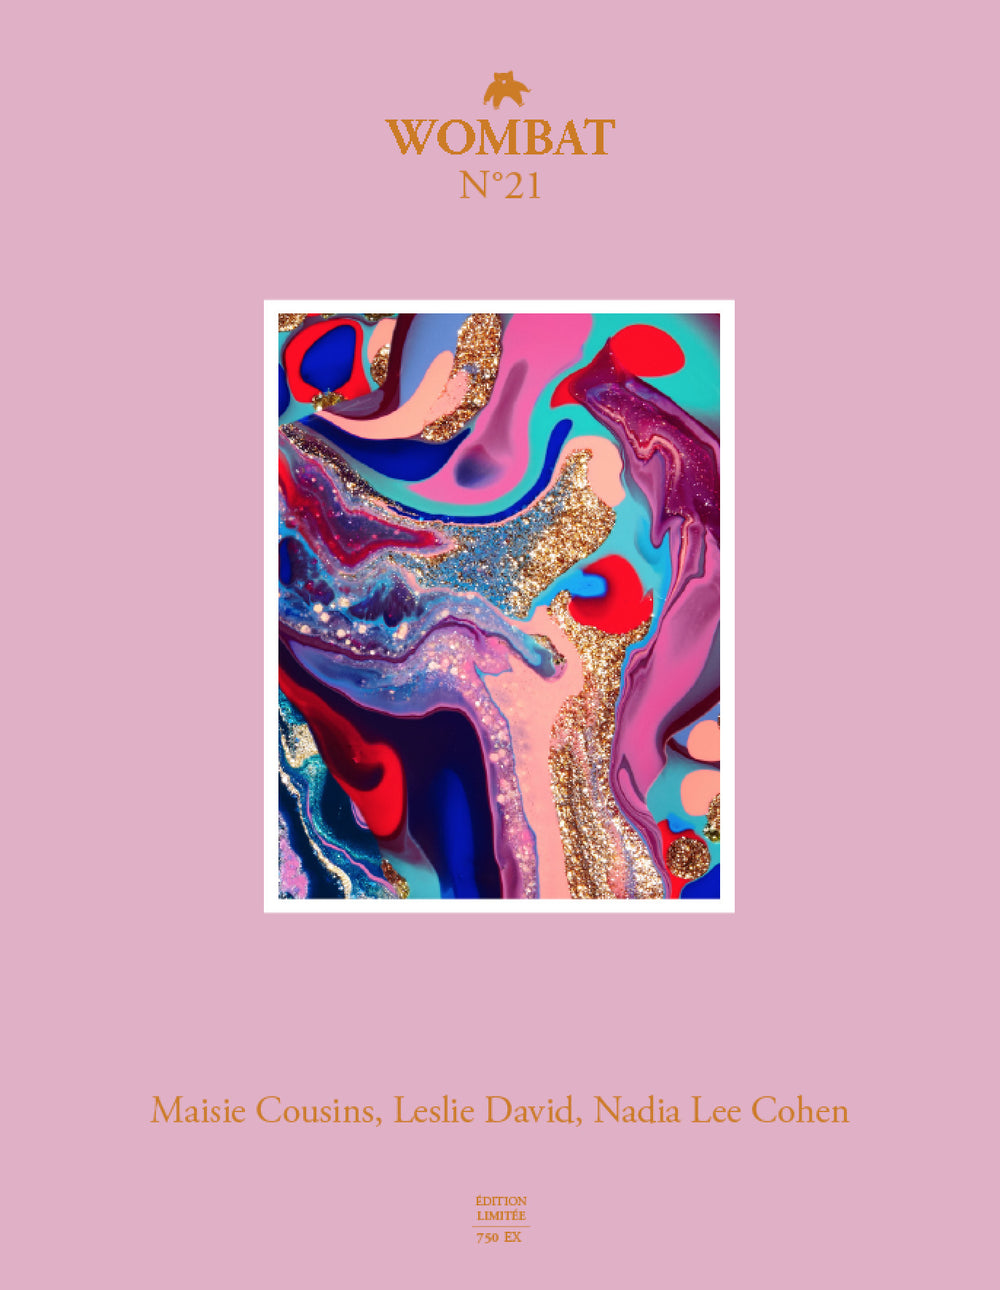 N°21 - Maisie Cousins, Leslie David, Nadia Lee Cohen - Wombat - The Photography and Art Box